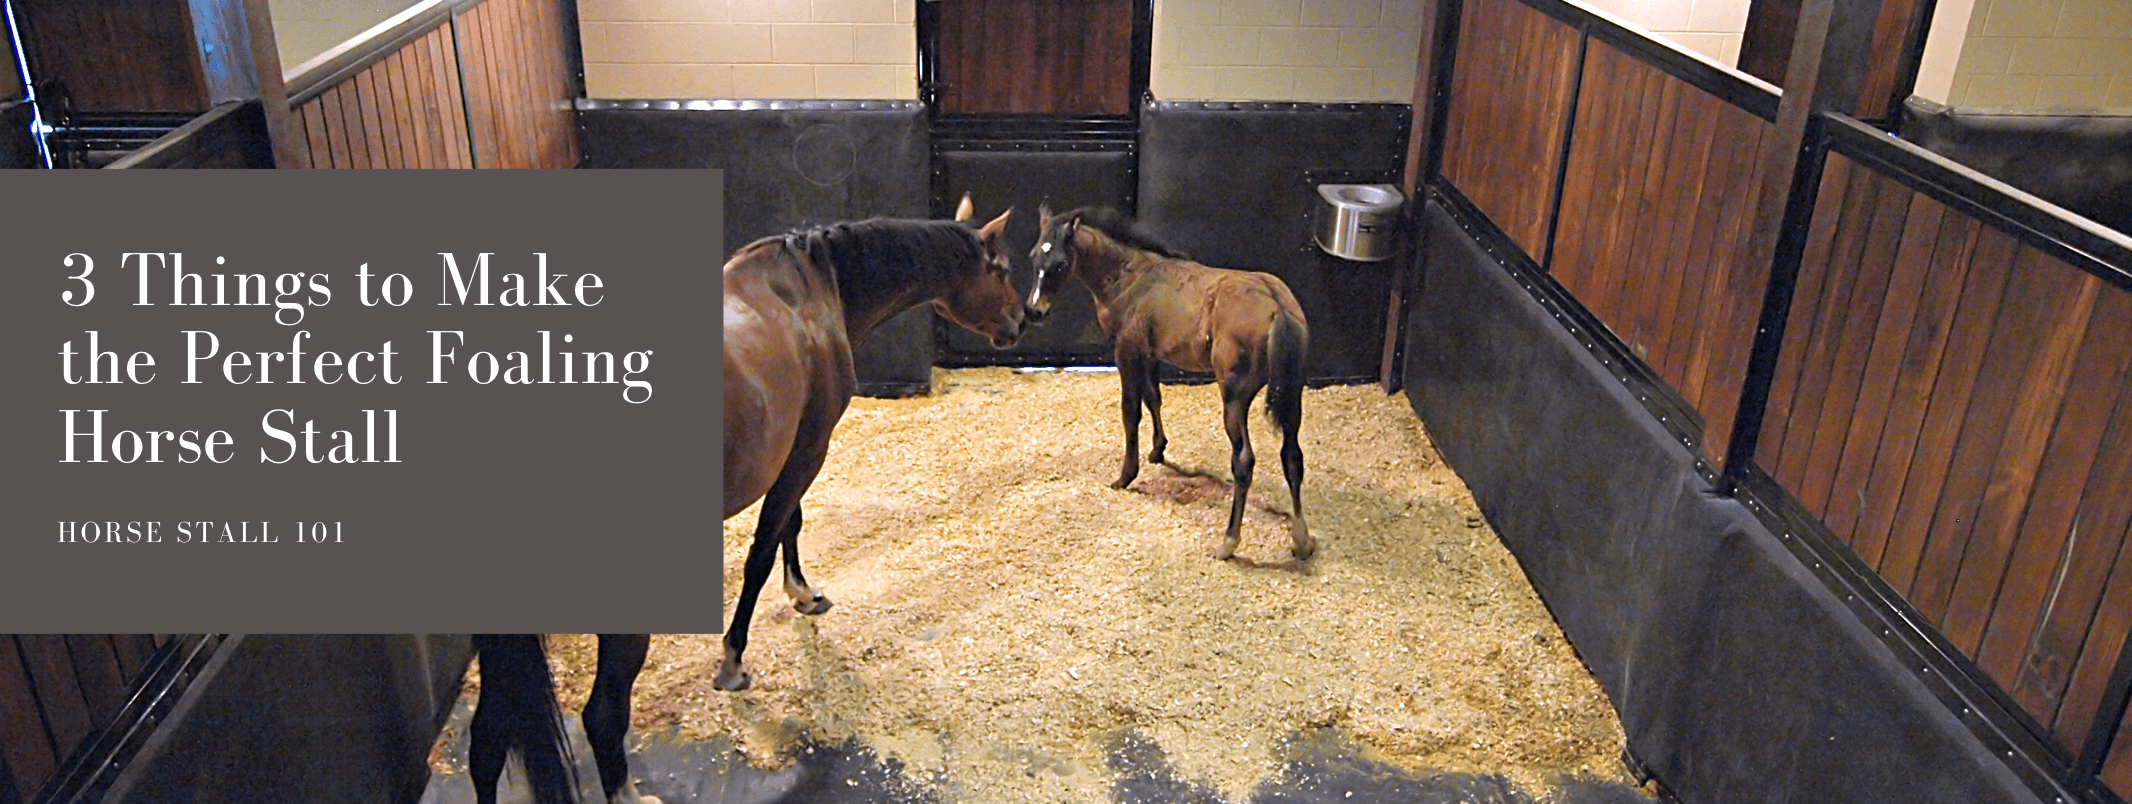 3 Considerations for the Perfect Foaling Horse Stall